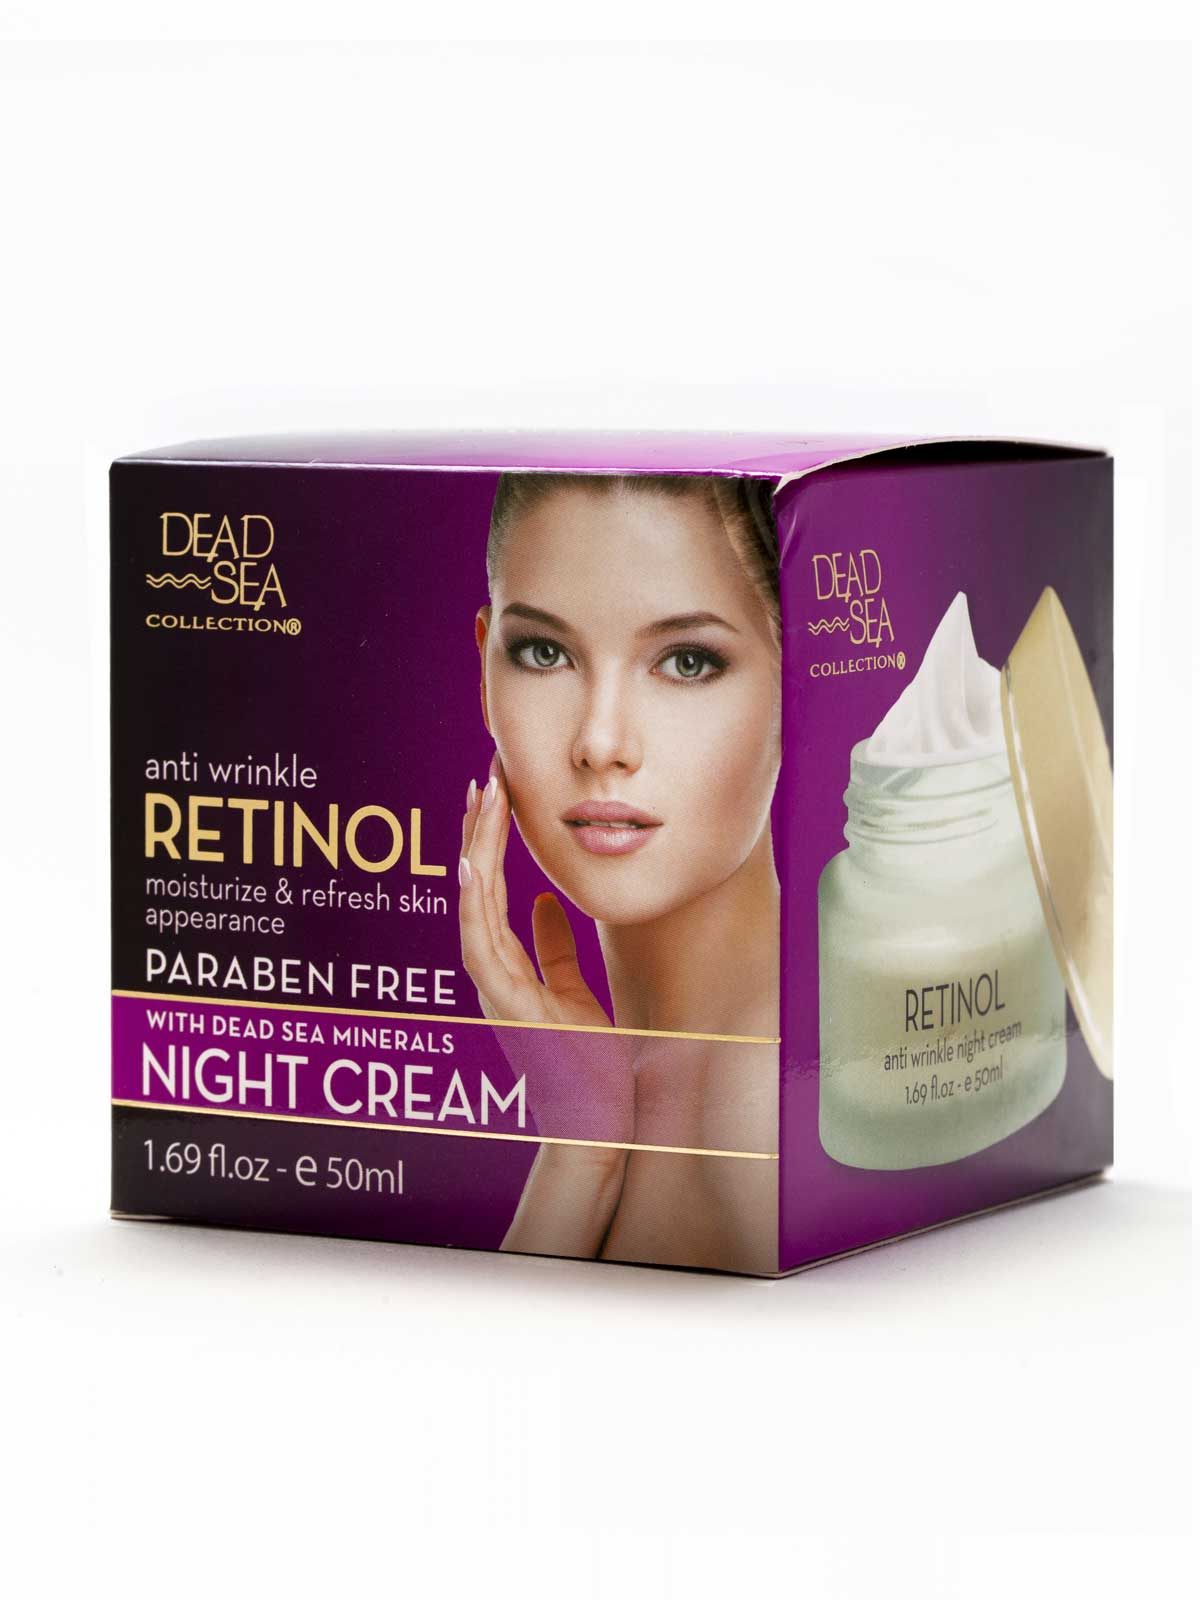 Retinol Anti Wrinkle Night Cream | Dead Sea Collection